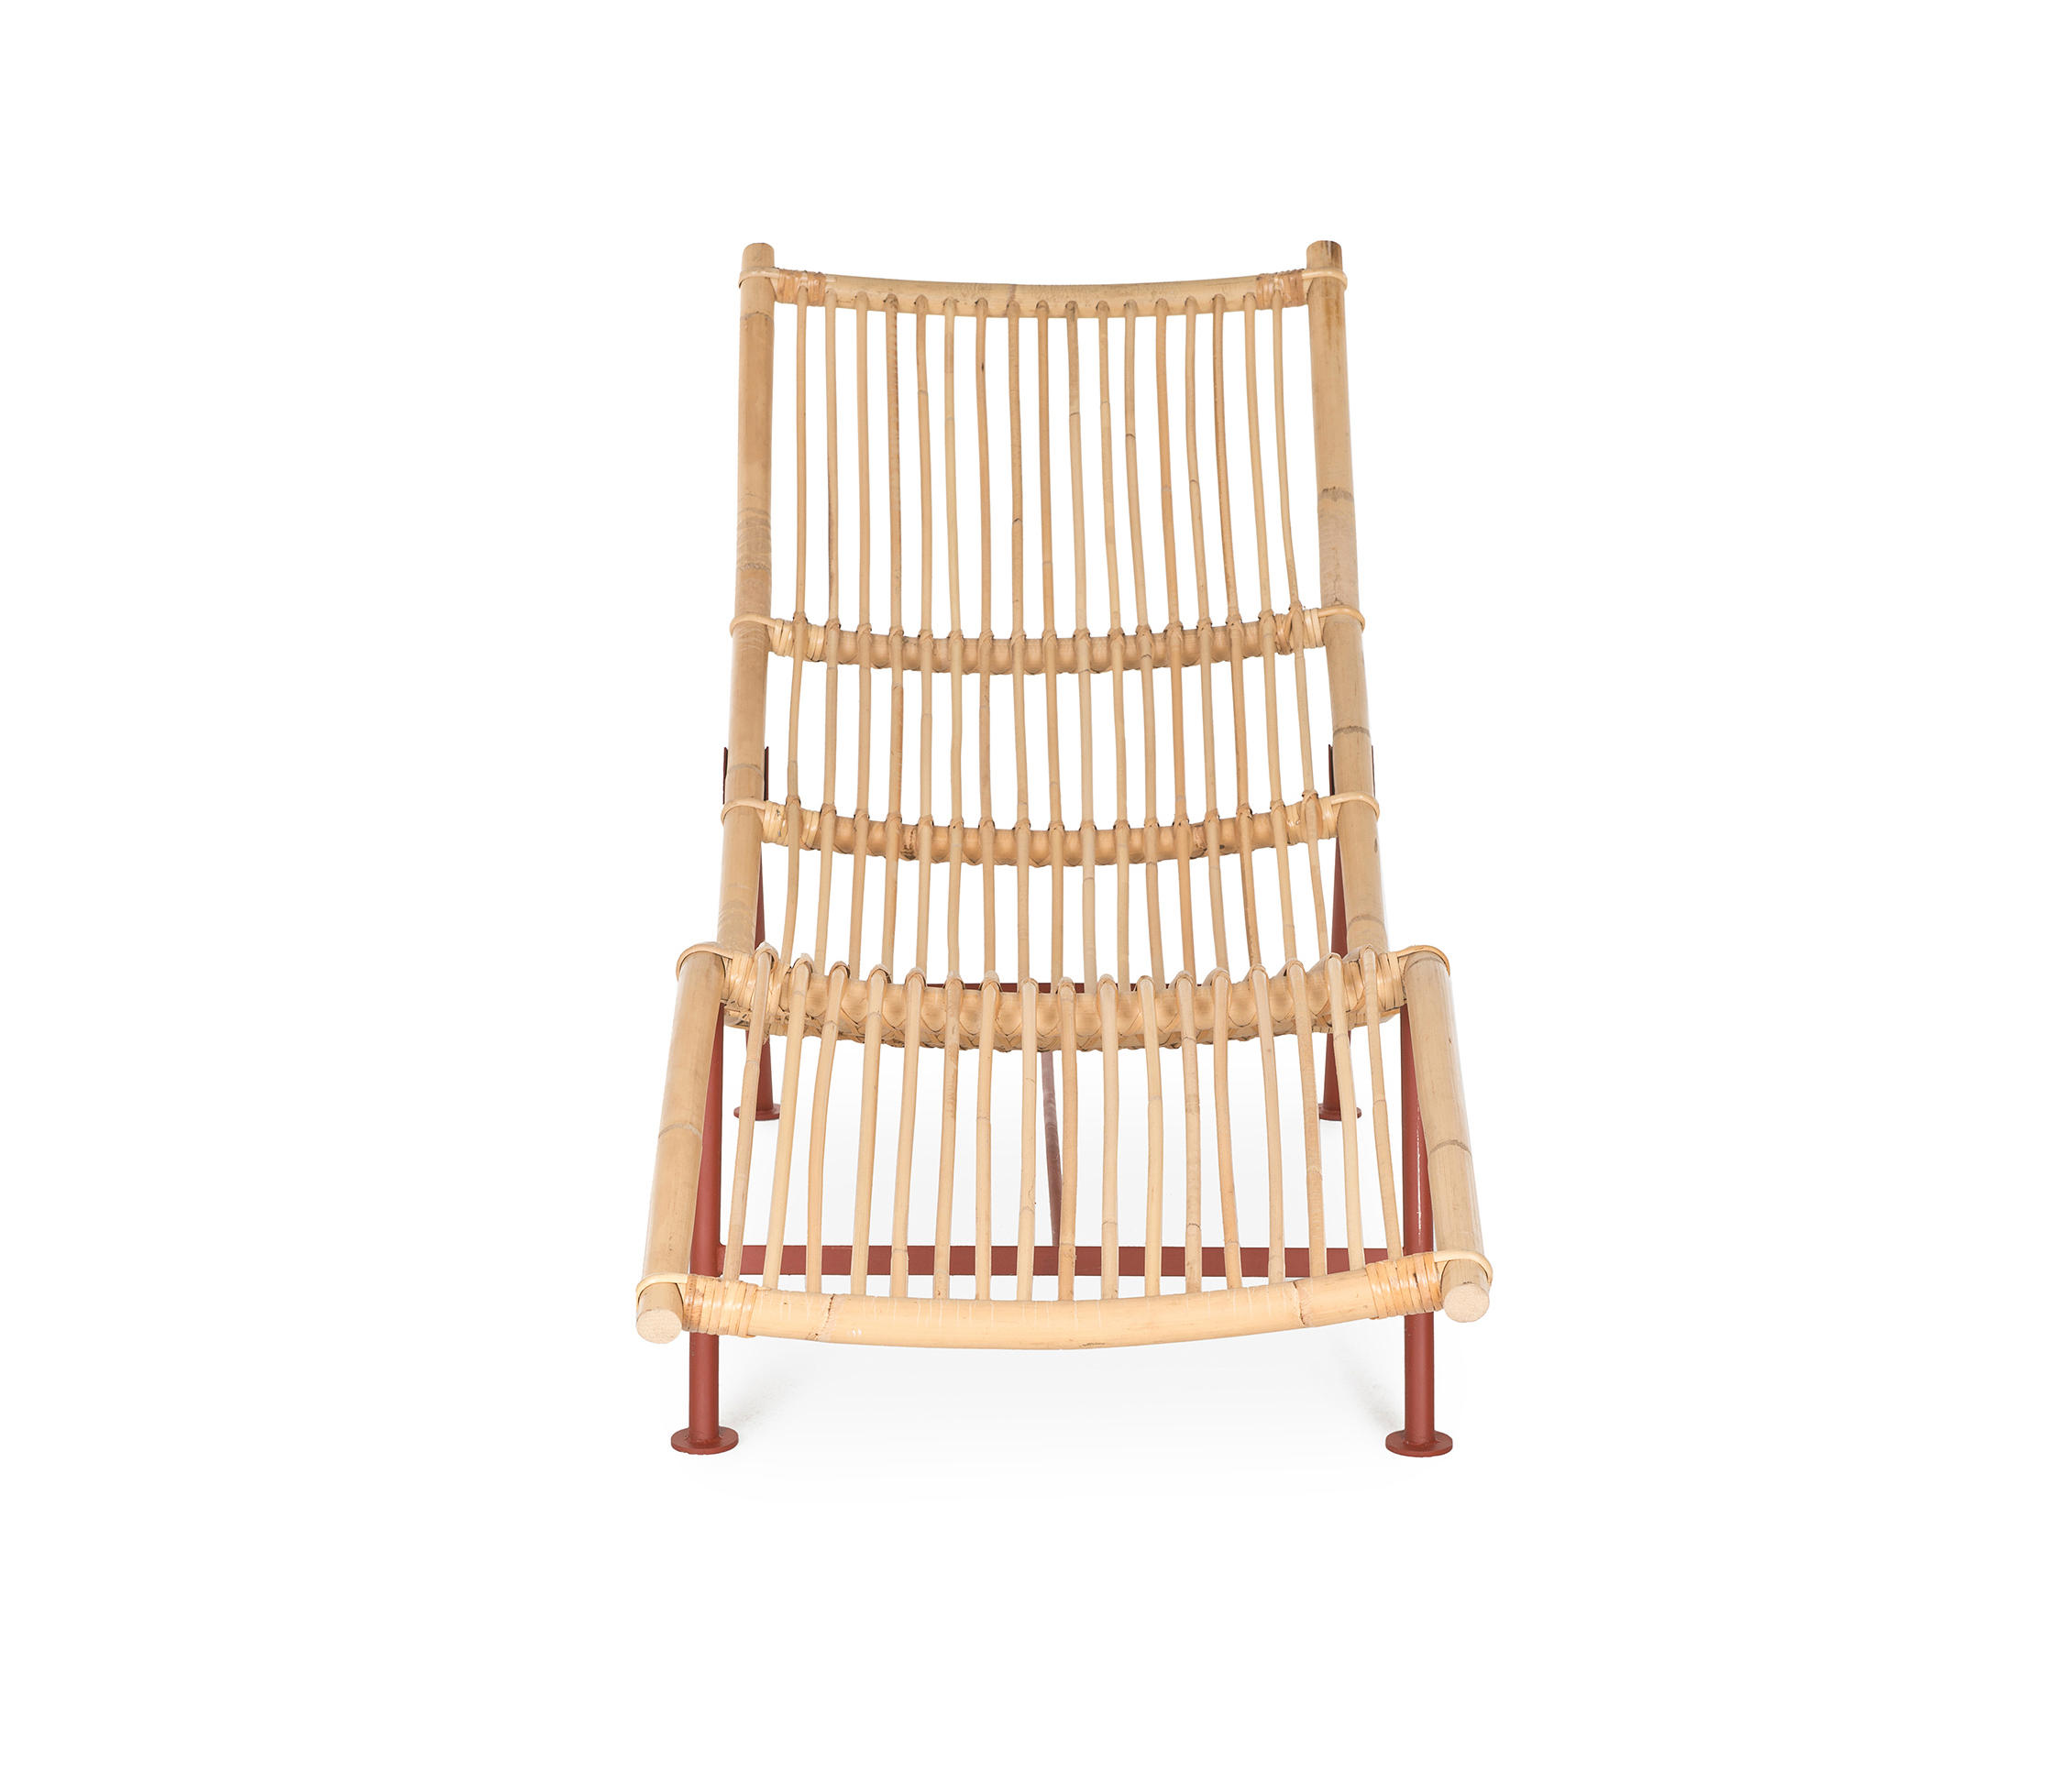 Cane chaise longue chaise longues from lensvelt architonic for Chaise longue manufacturers